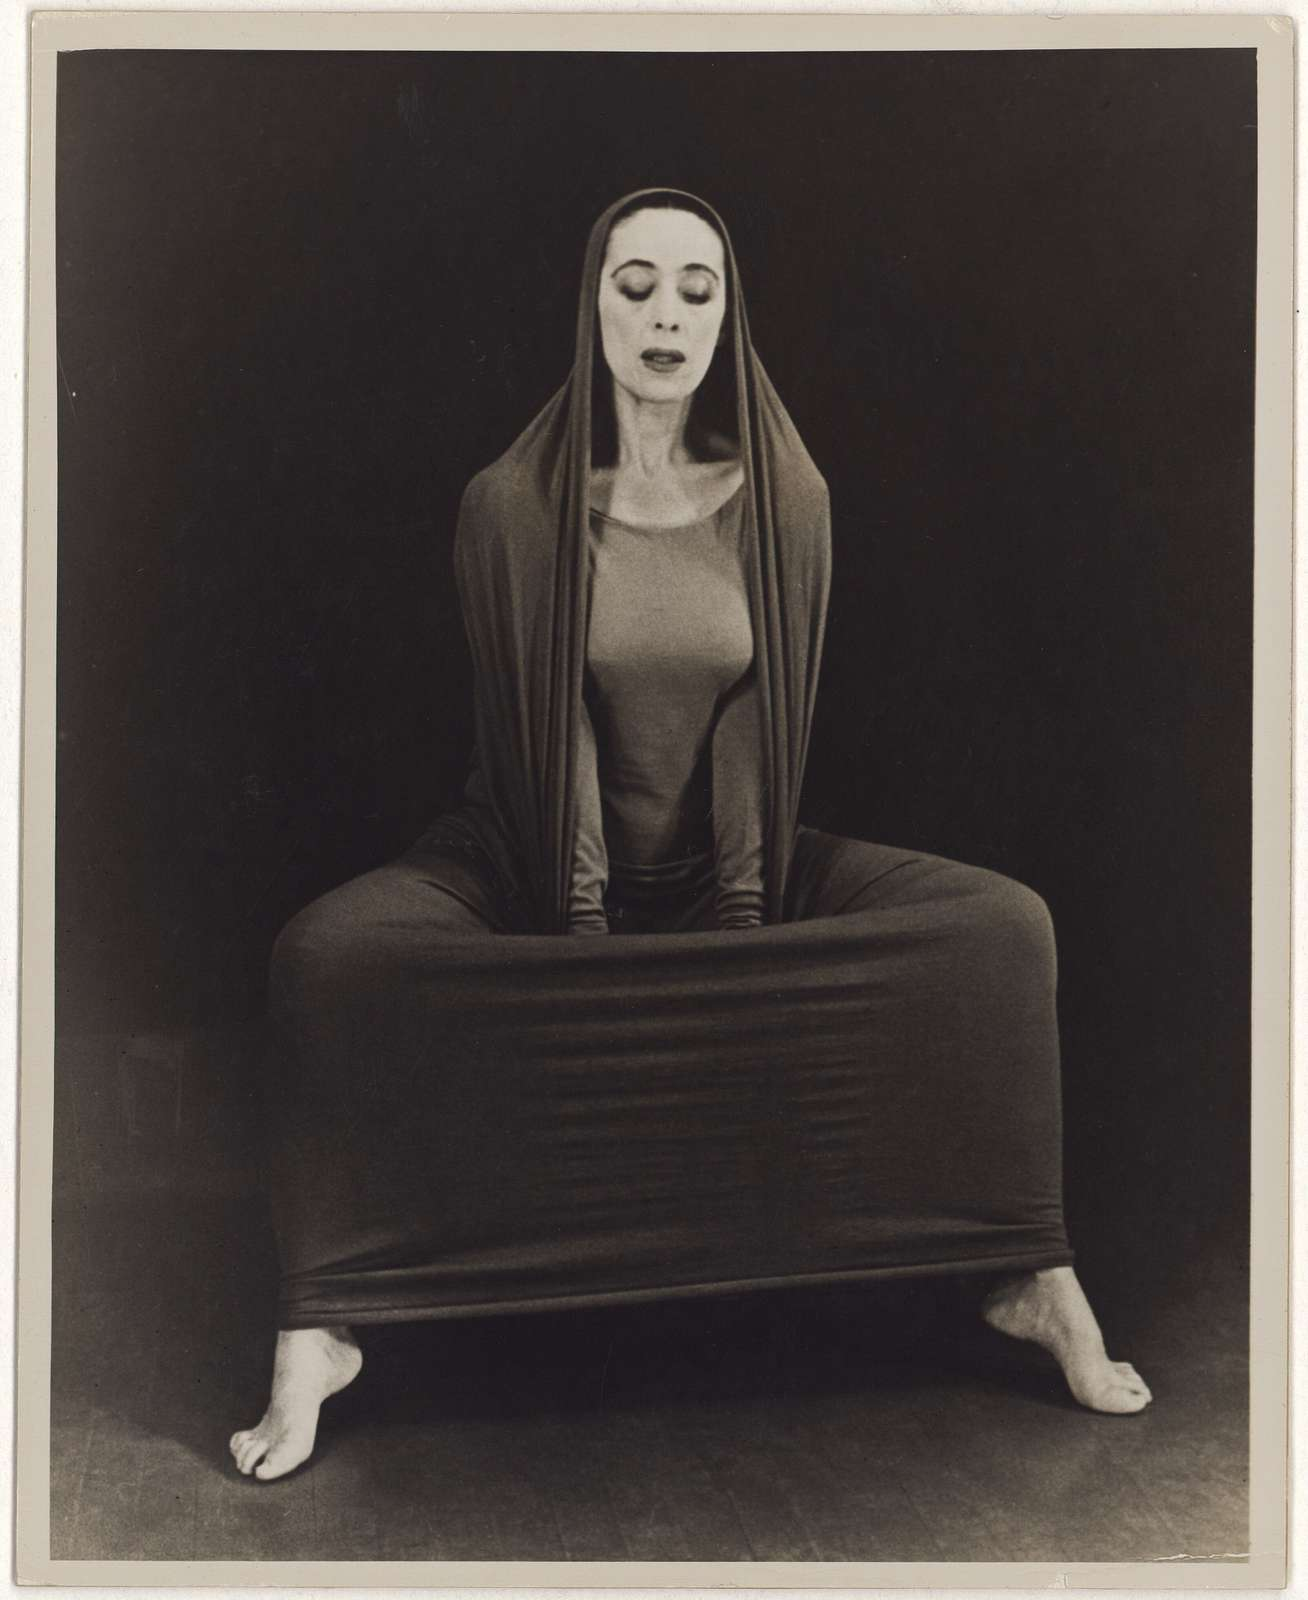 Martha Graham in Lamentation, No. 16